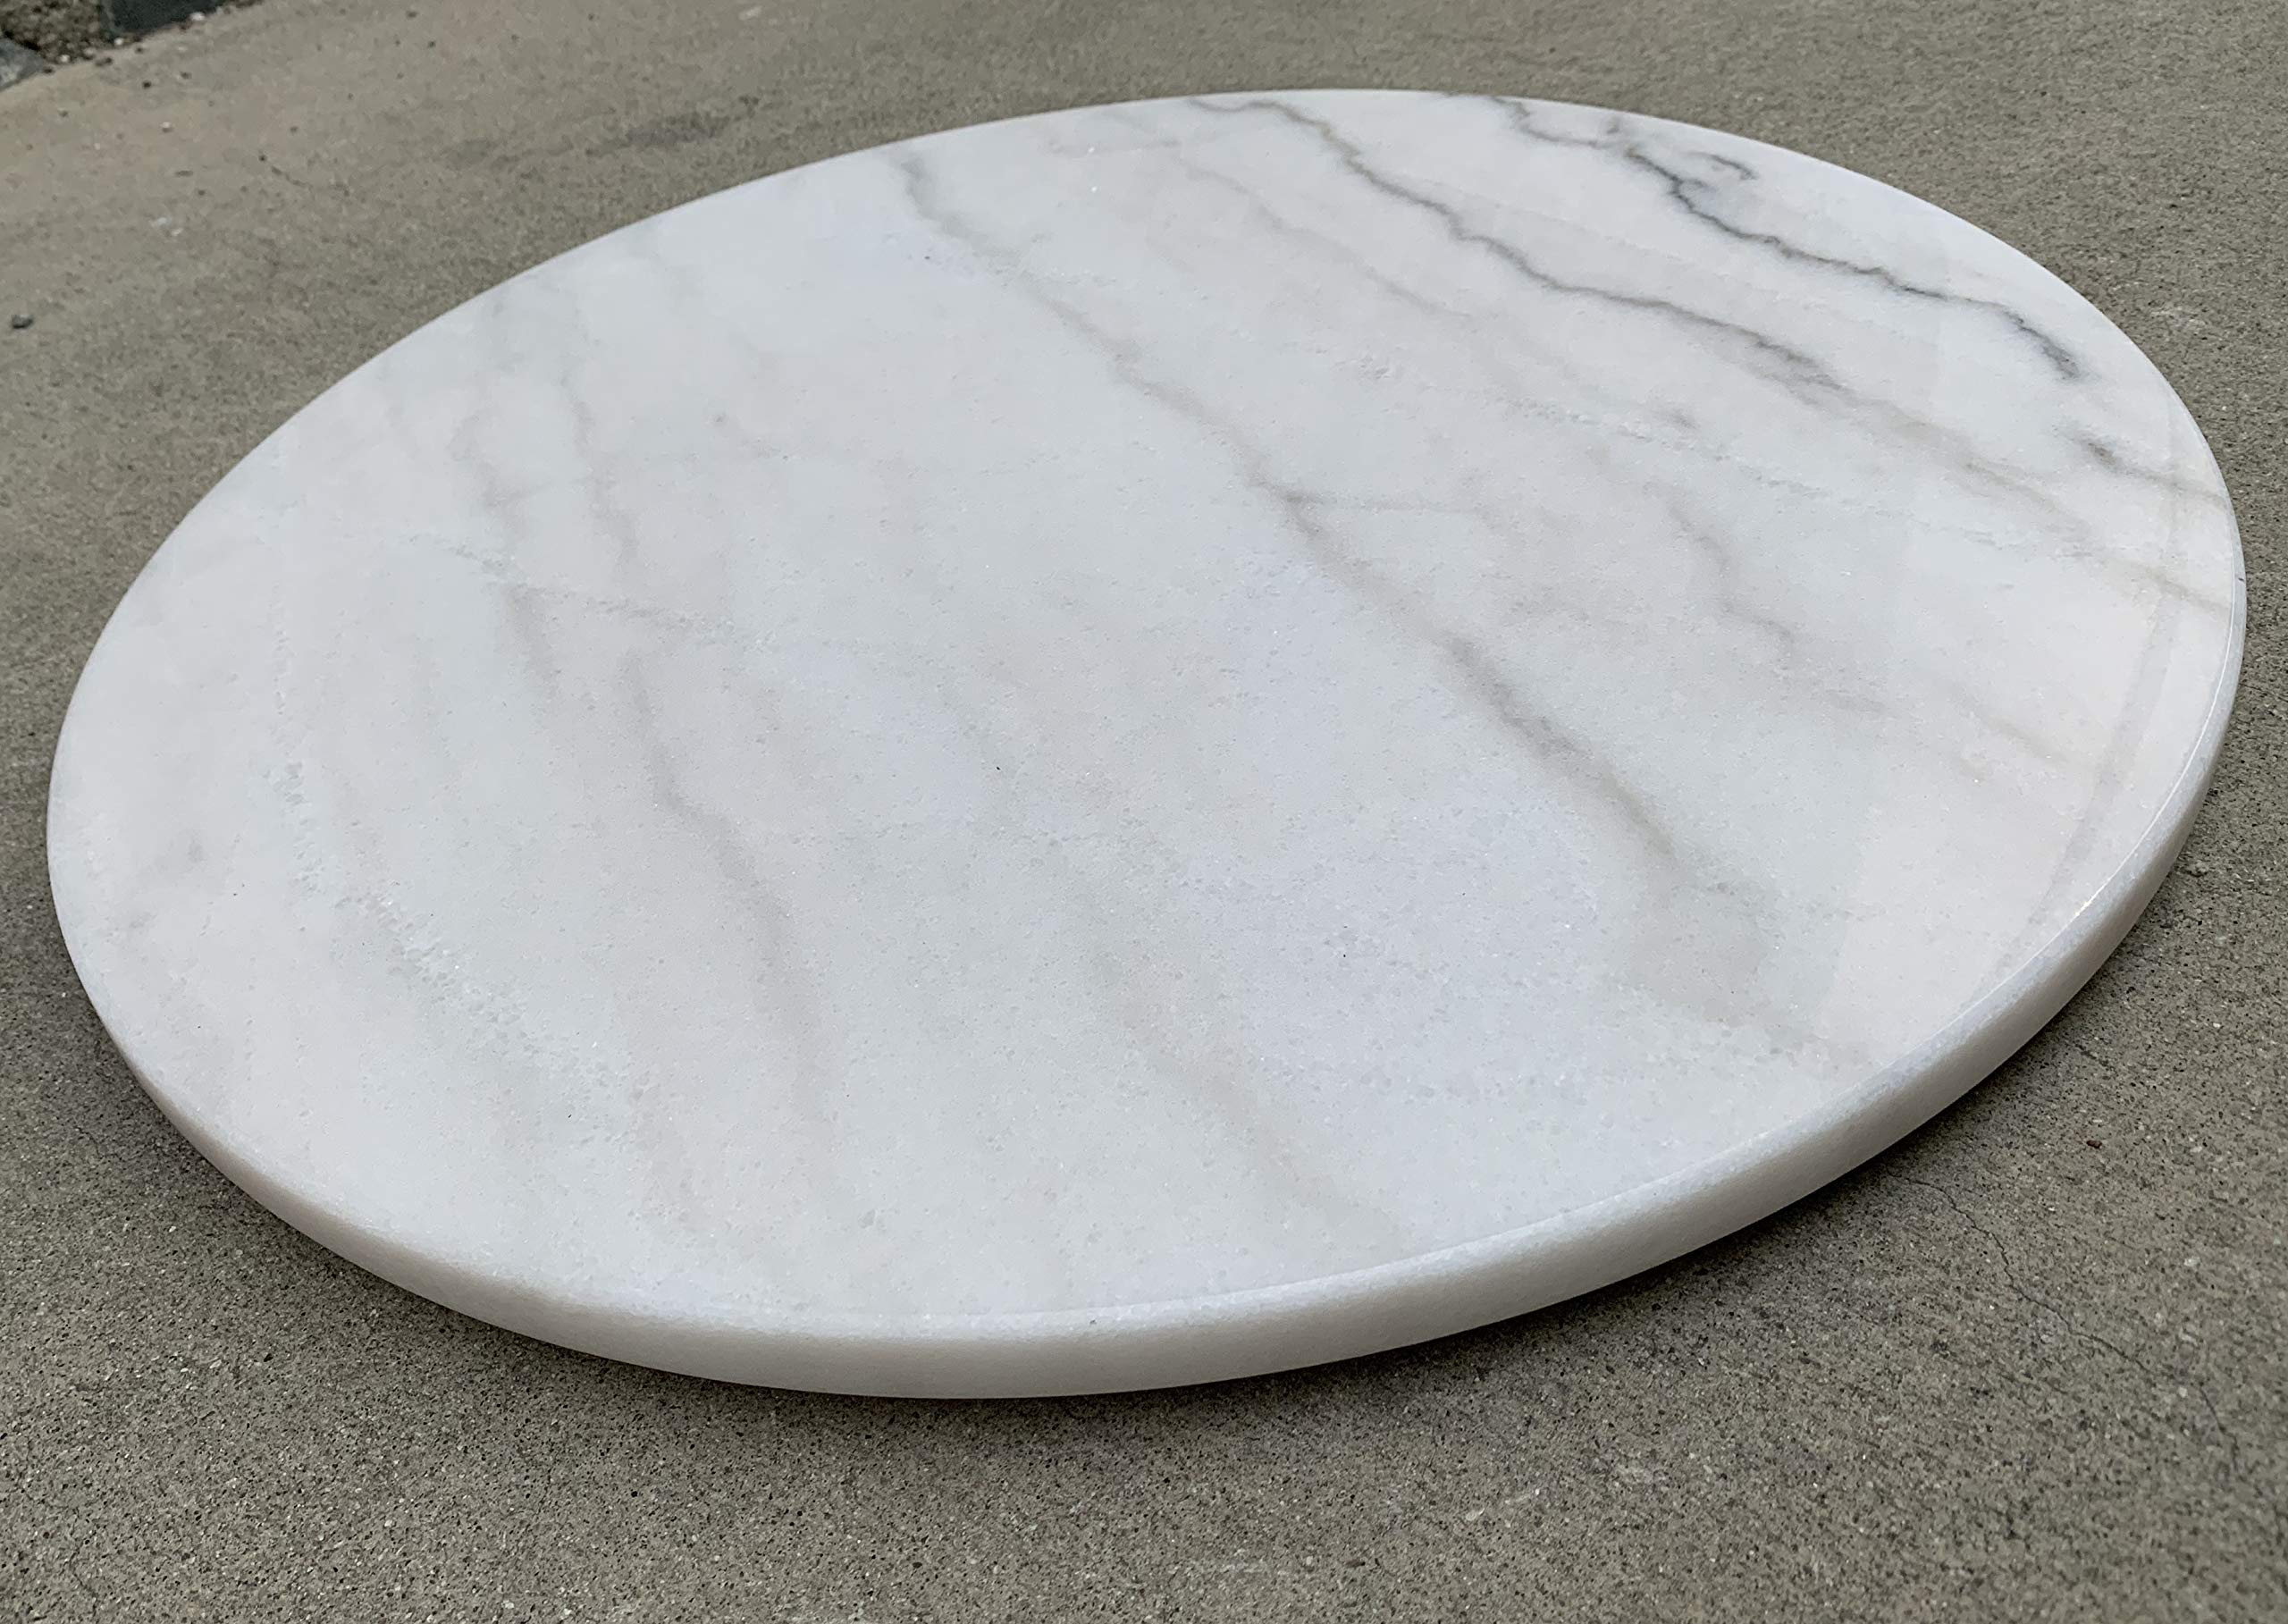 Advanced Furniture 20'' Round White Marble Lazy Susan Turntable Tray by Advanced Furniture